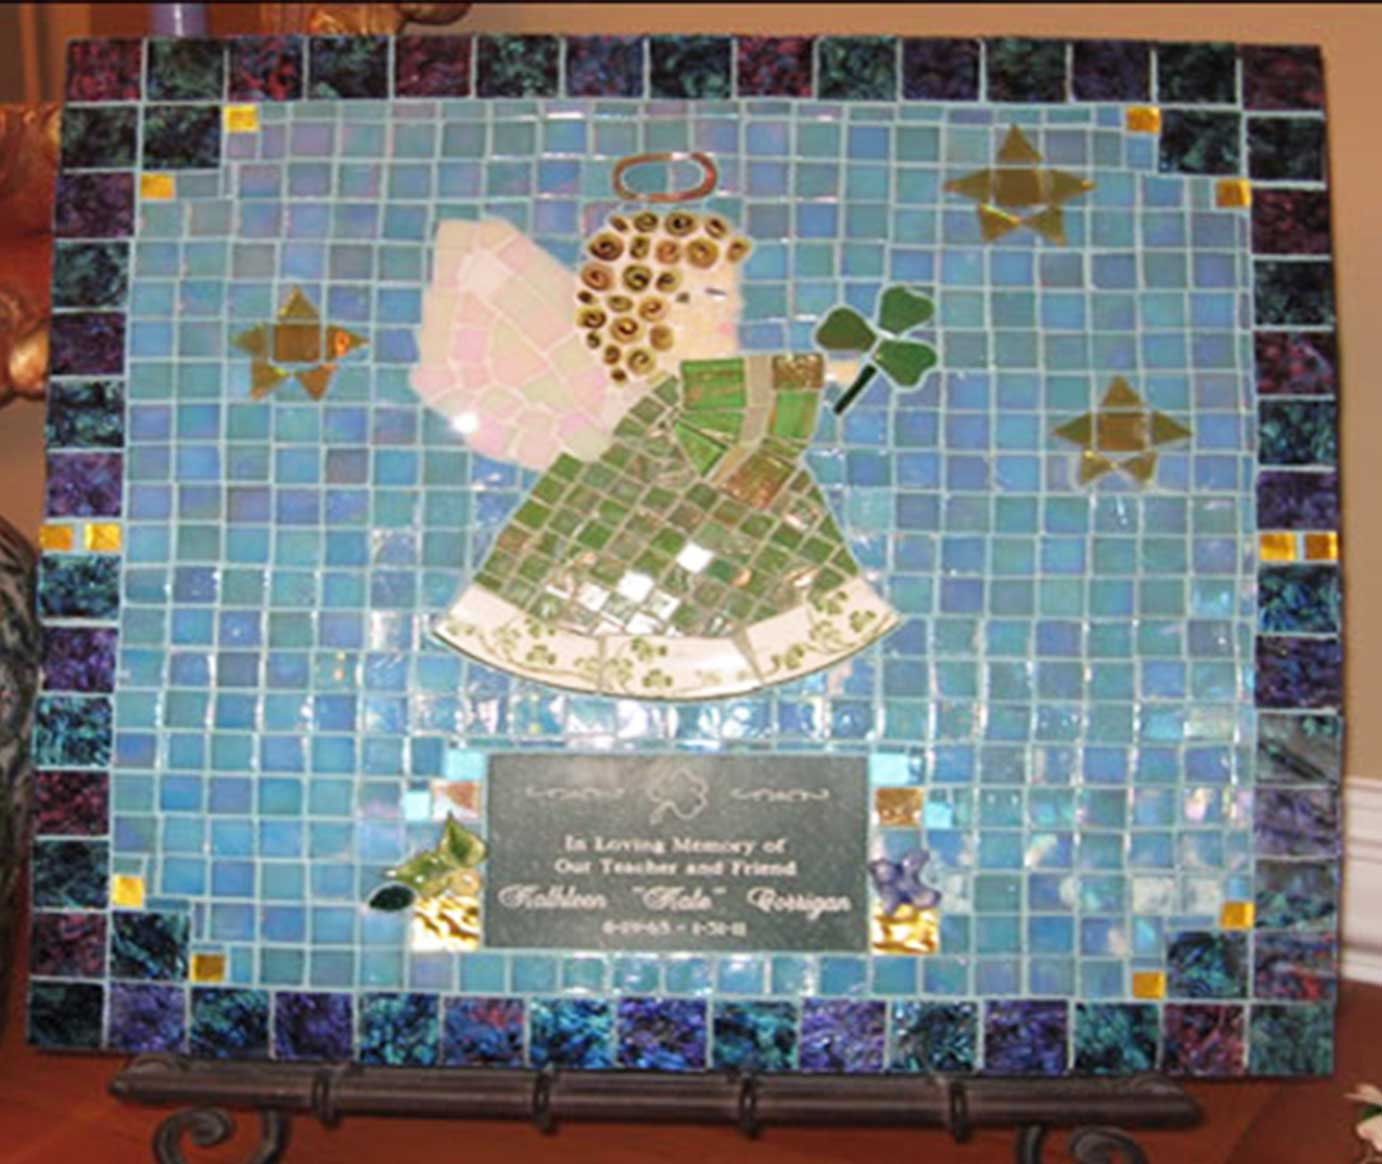 Mosaic Memorial Picture Plaque of Kate's Angel by Water's End Studio Artist Linda Solby